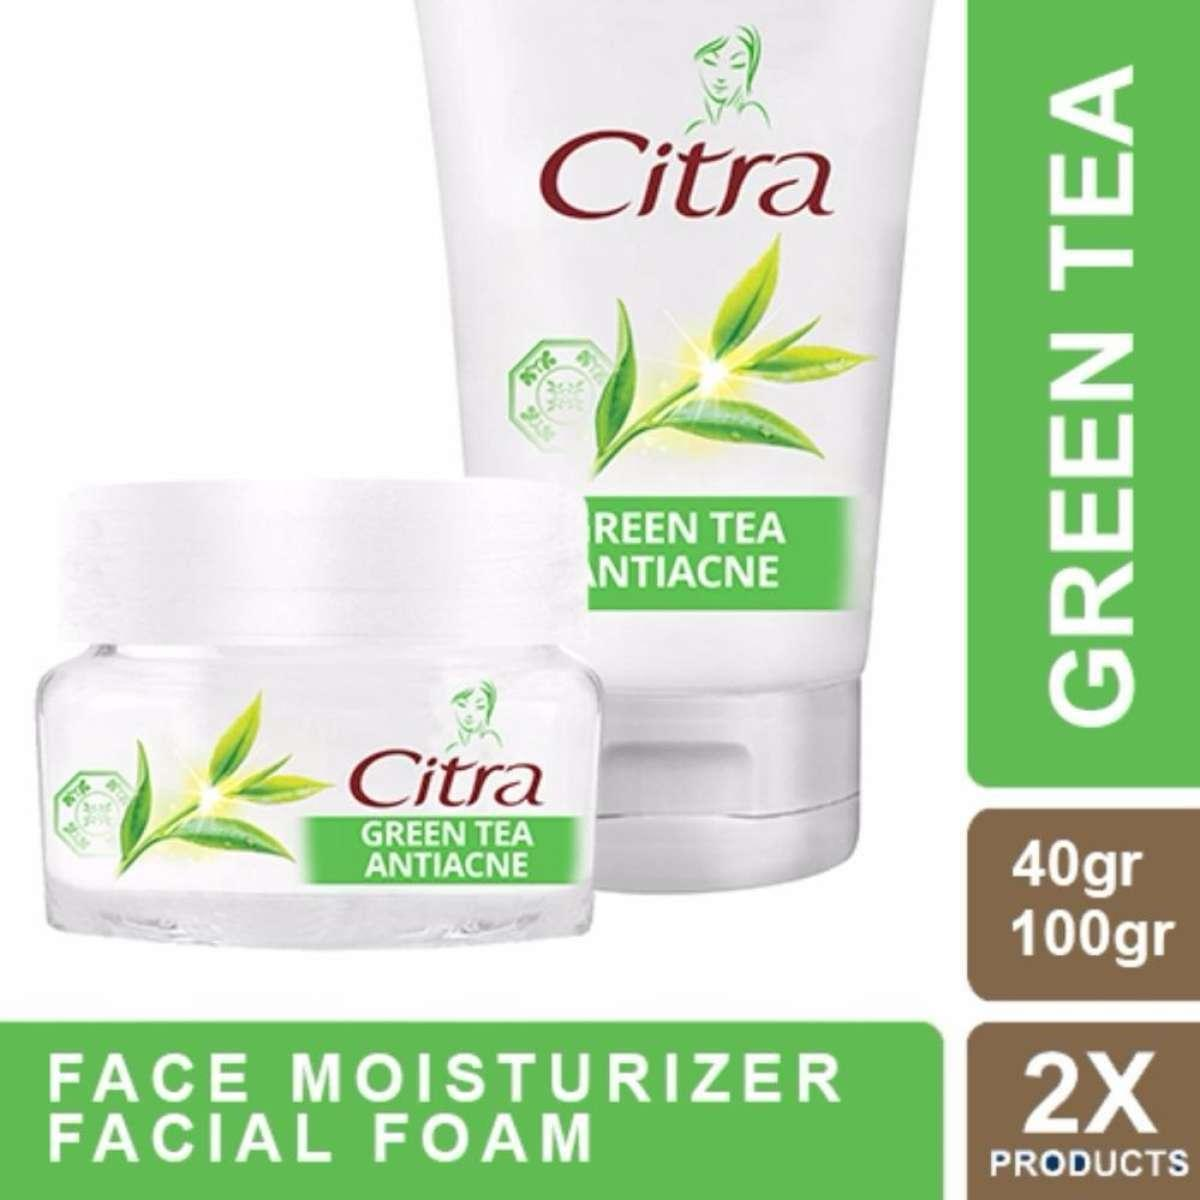 Citra Antiacne Green Tea Facial Foam 100gr & Face Moisturizer 40gr